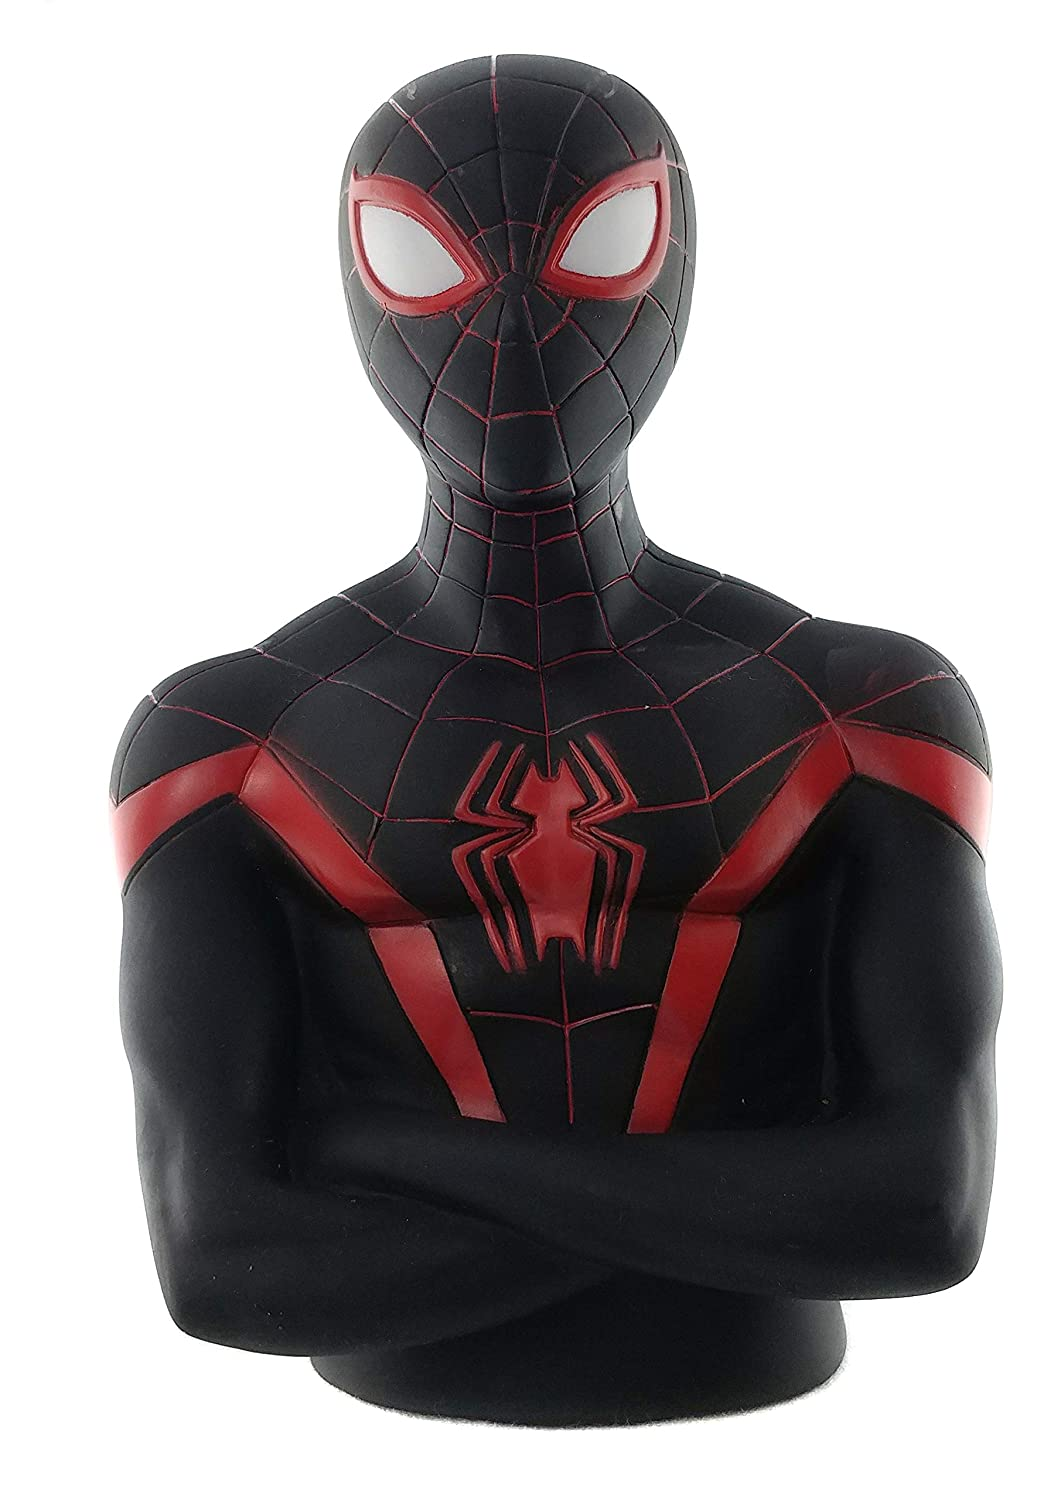 Kids and Preschoolers. Marvel Spider-Man Black Suit Toy Coin Bank for Toddlers